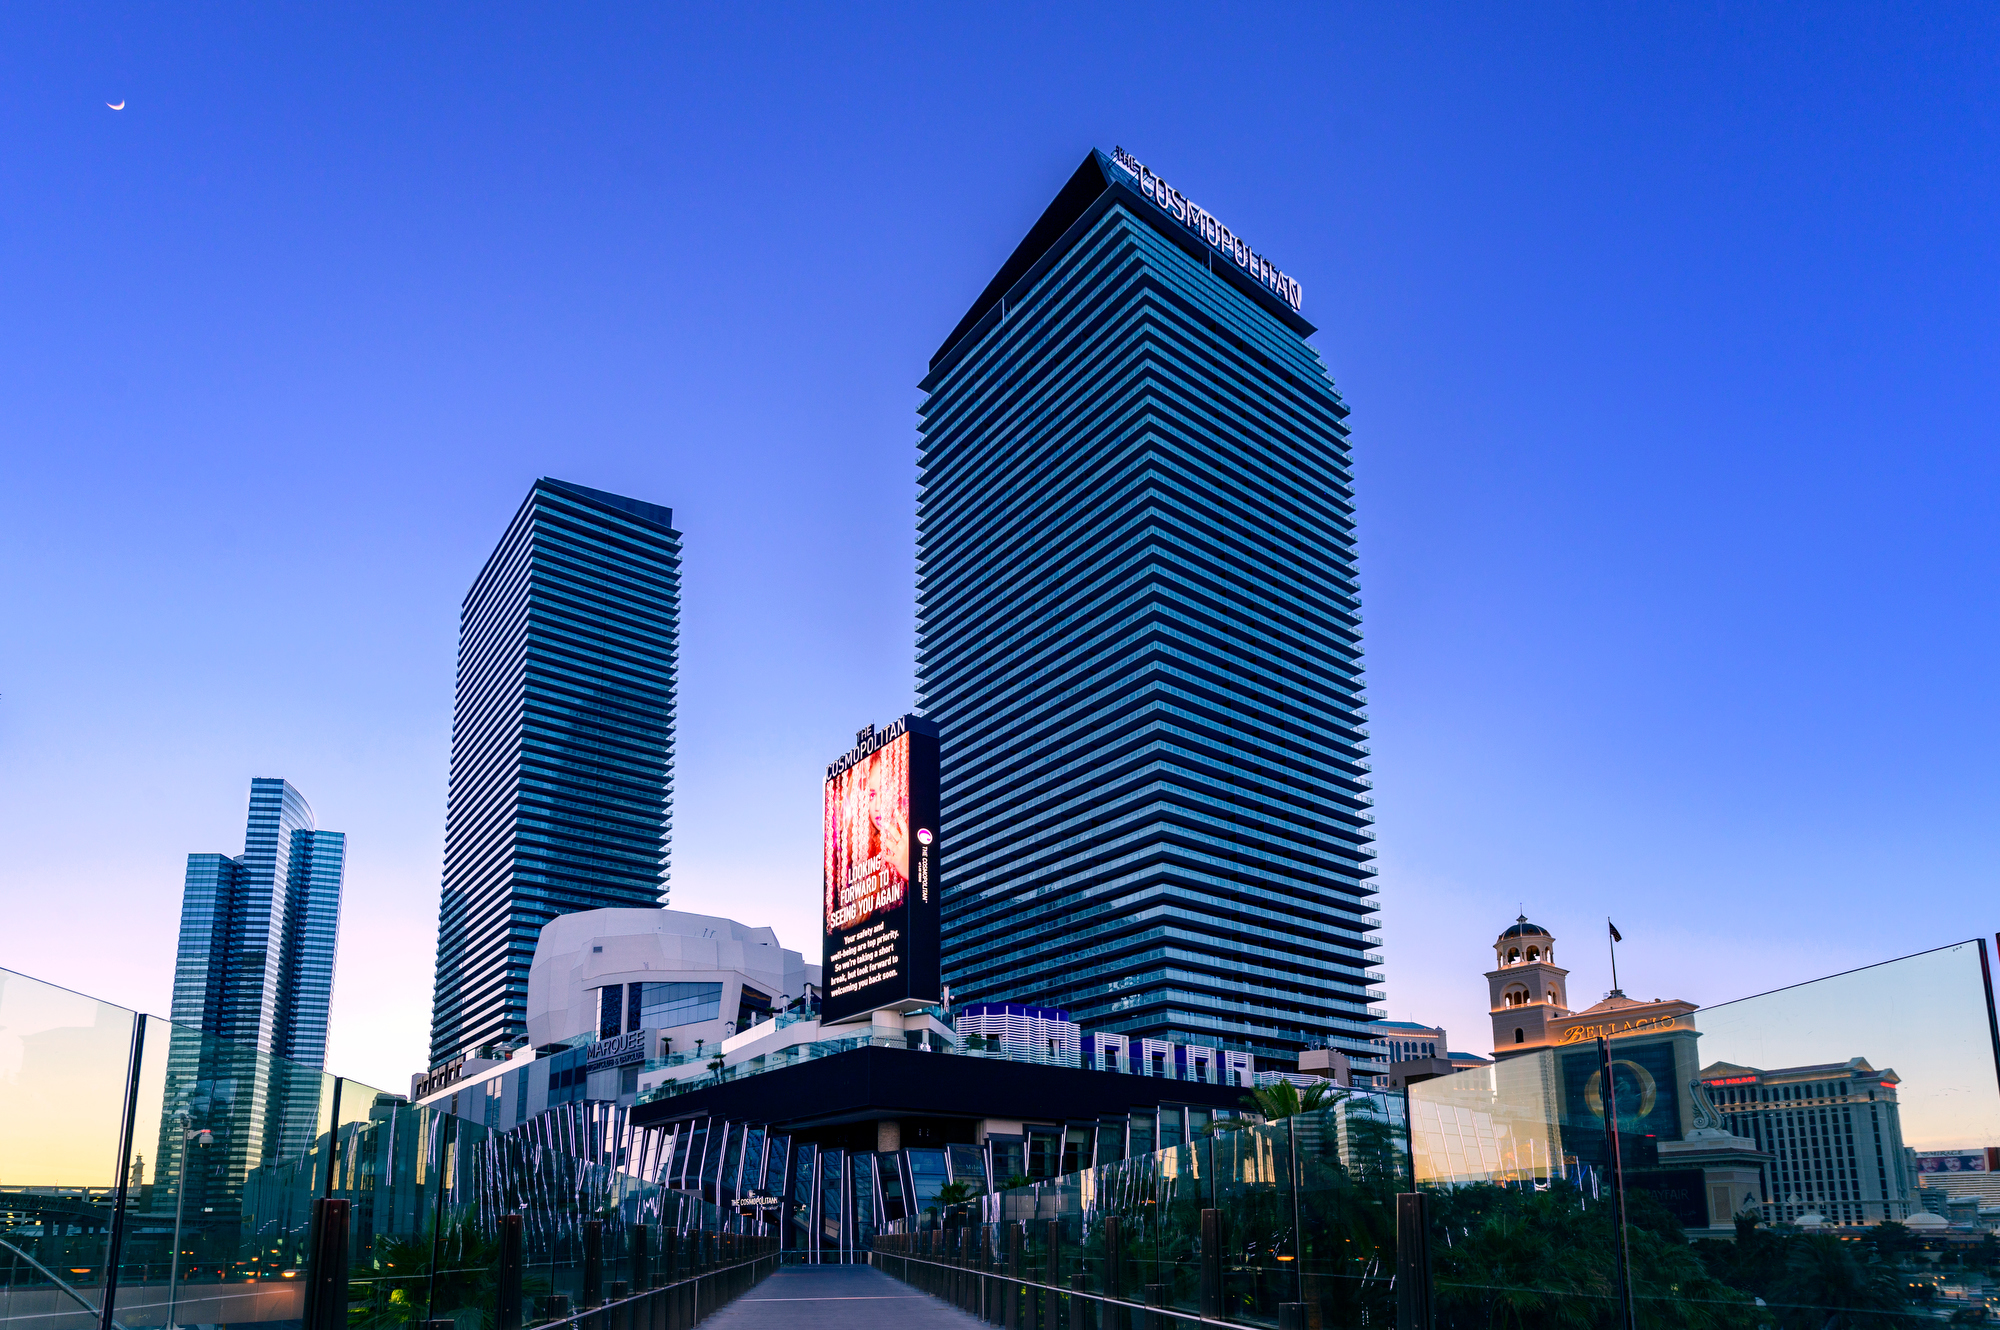 The exterior of a casino at dusk